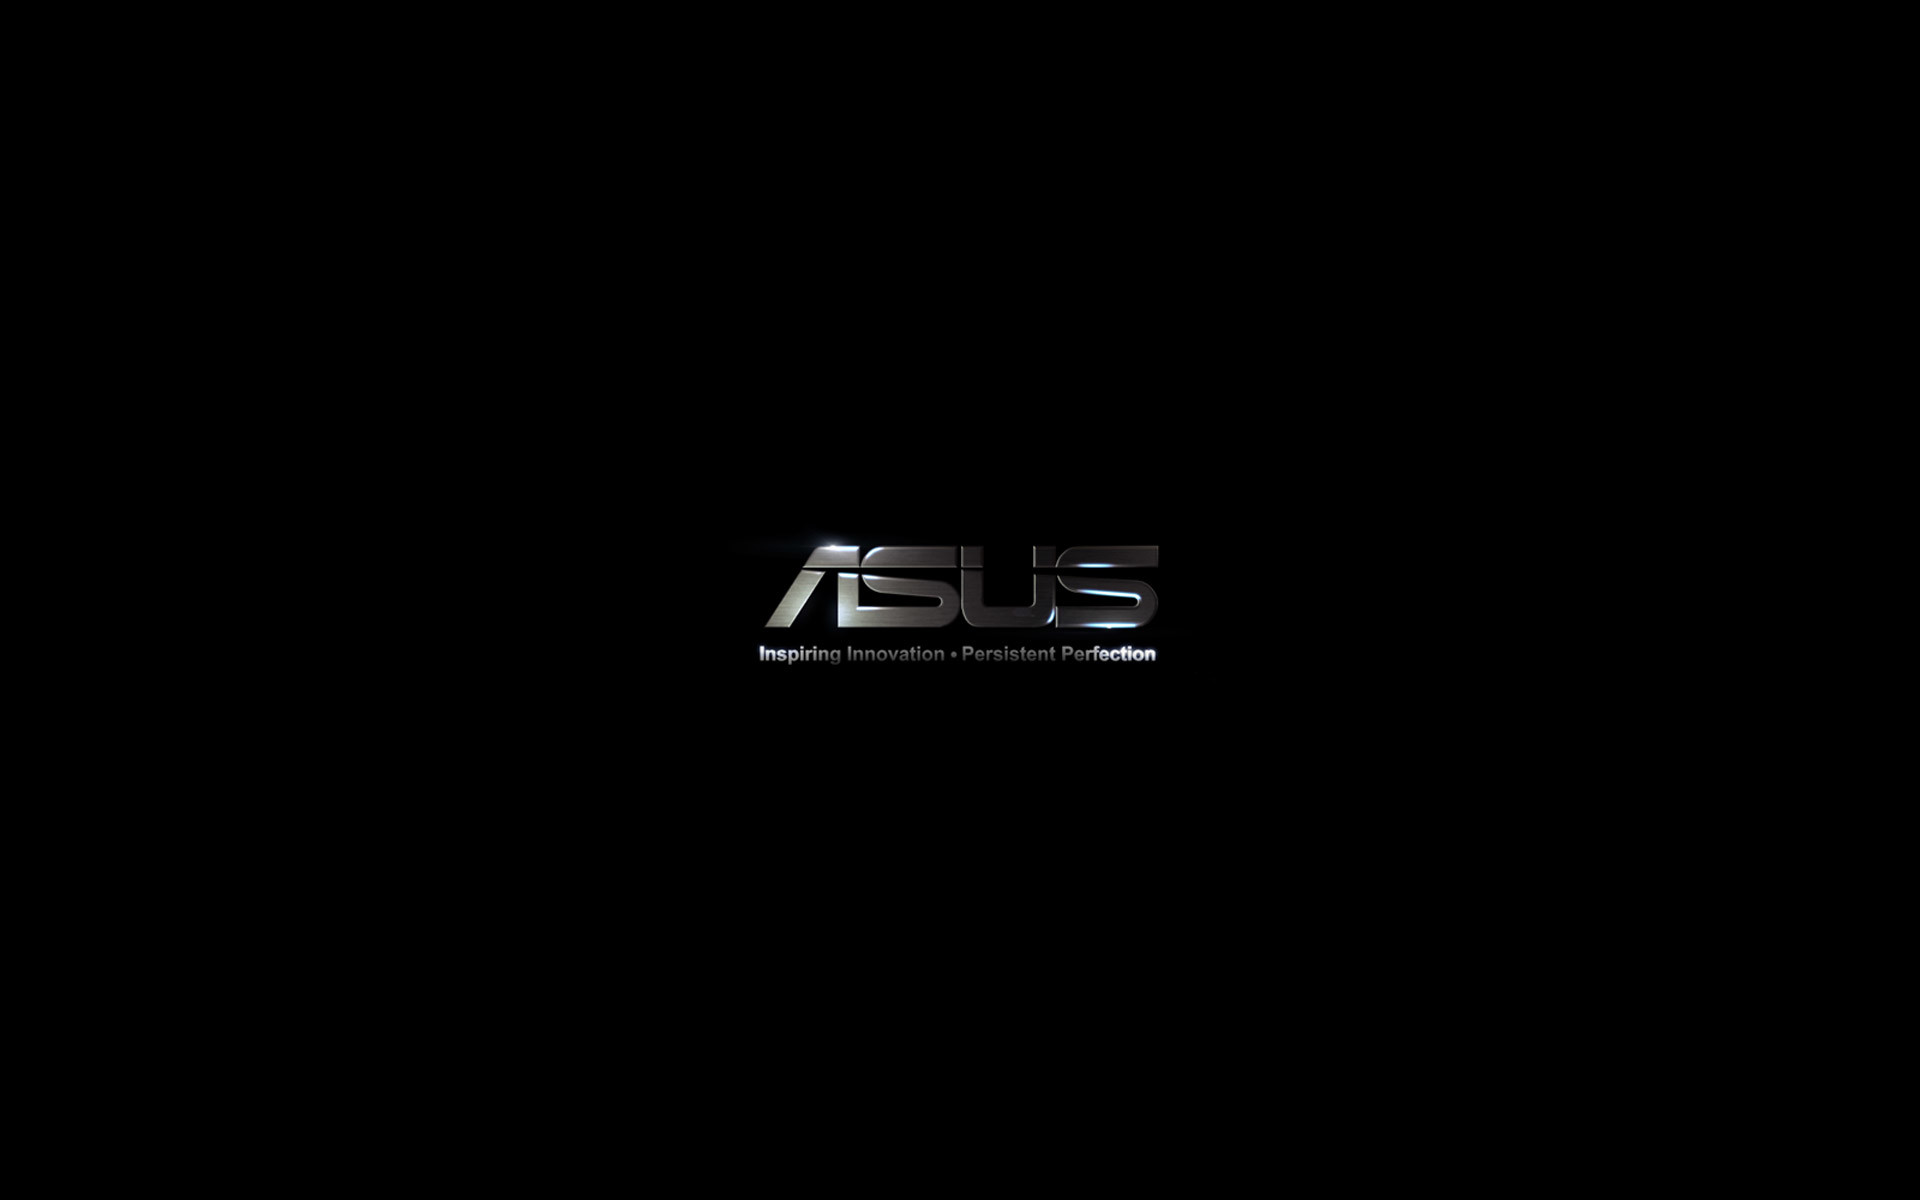 Asus wallpaper full hd 86 images - Asus x series wallpaper hd ...